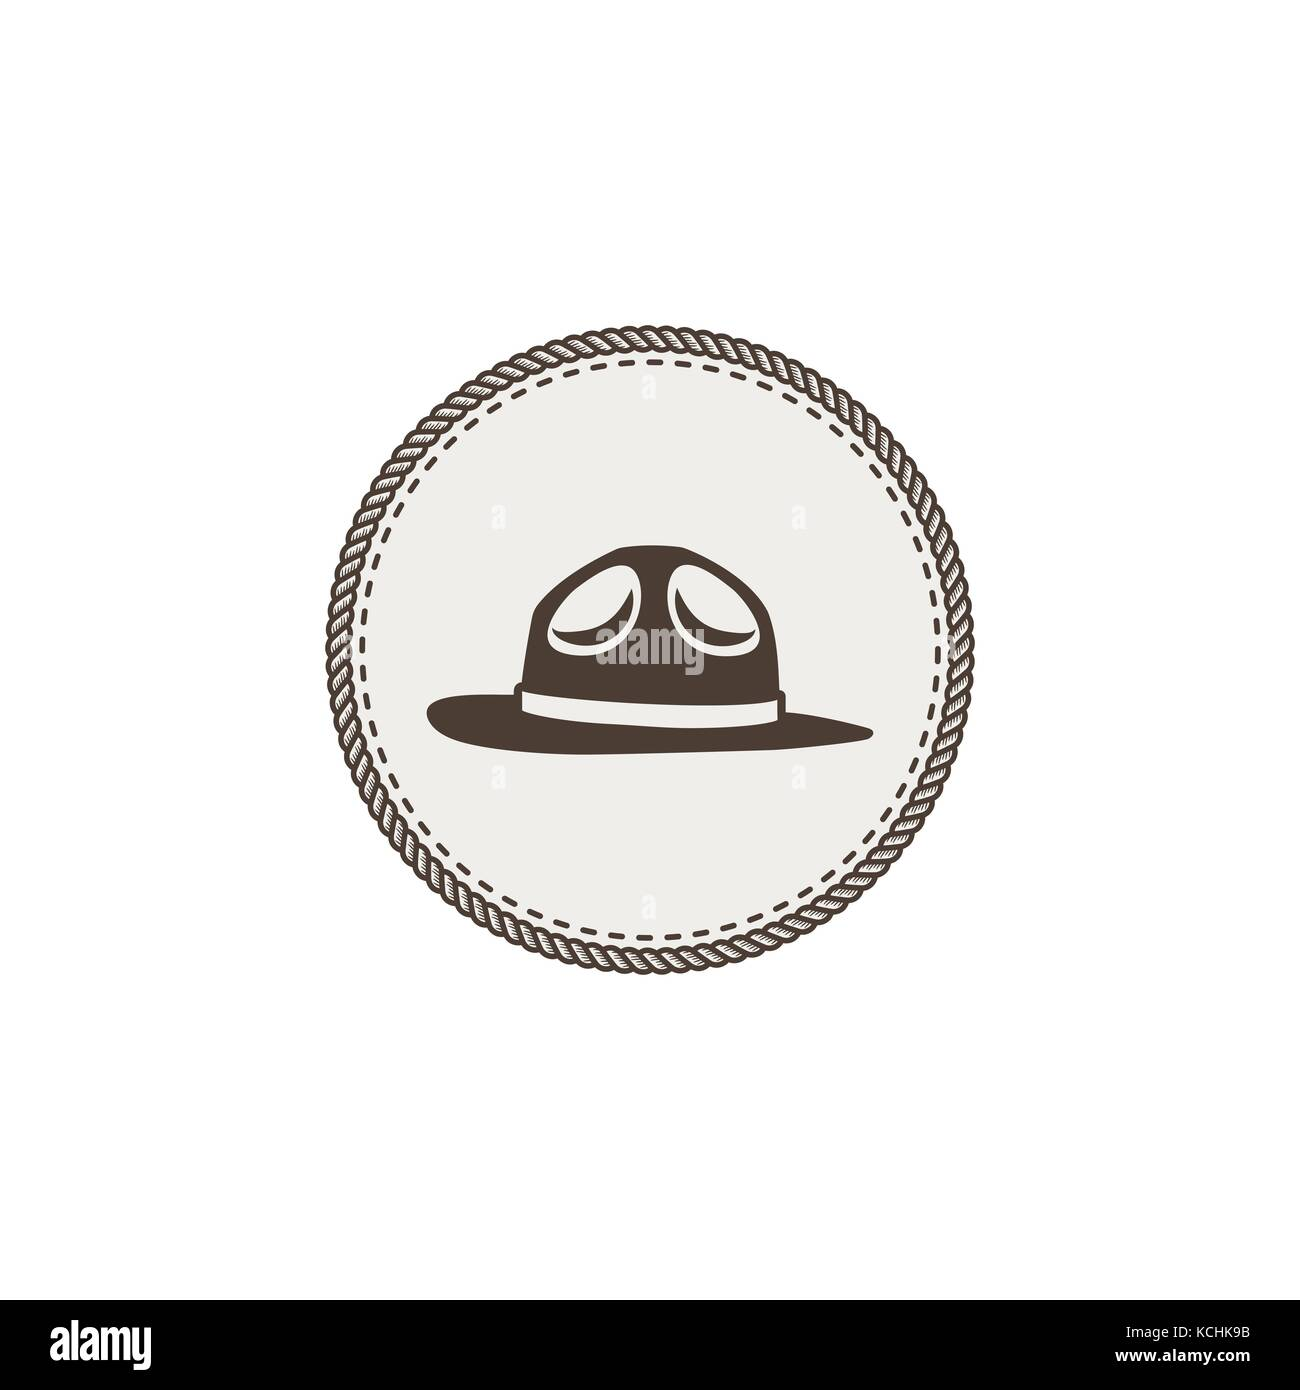 scout hat sticker, icon. Vintage hand drawn adventure patch design. Stock vector illustration isolated on white - Stock Vector